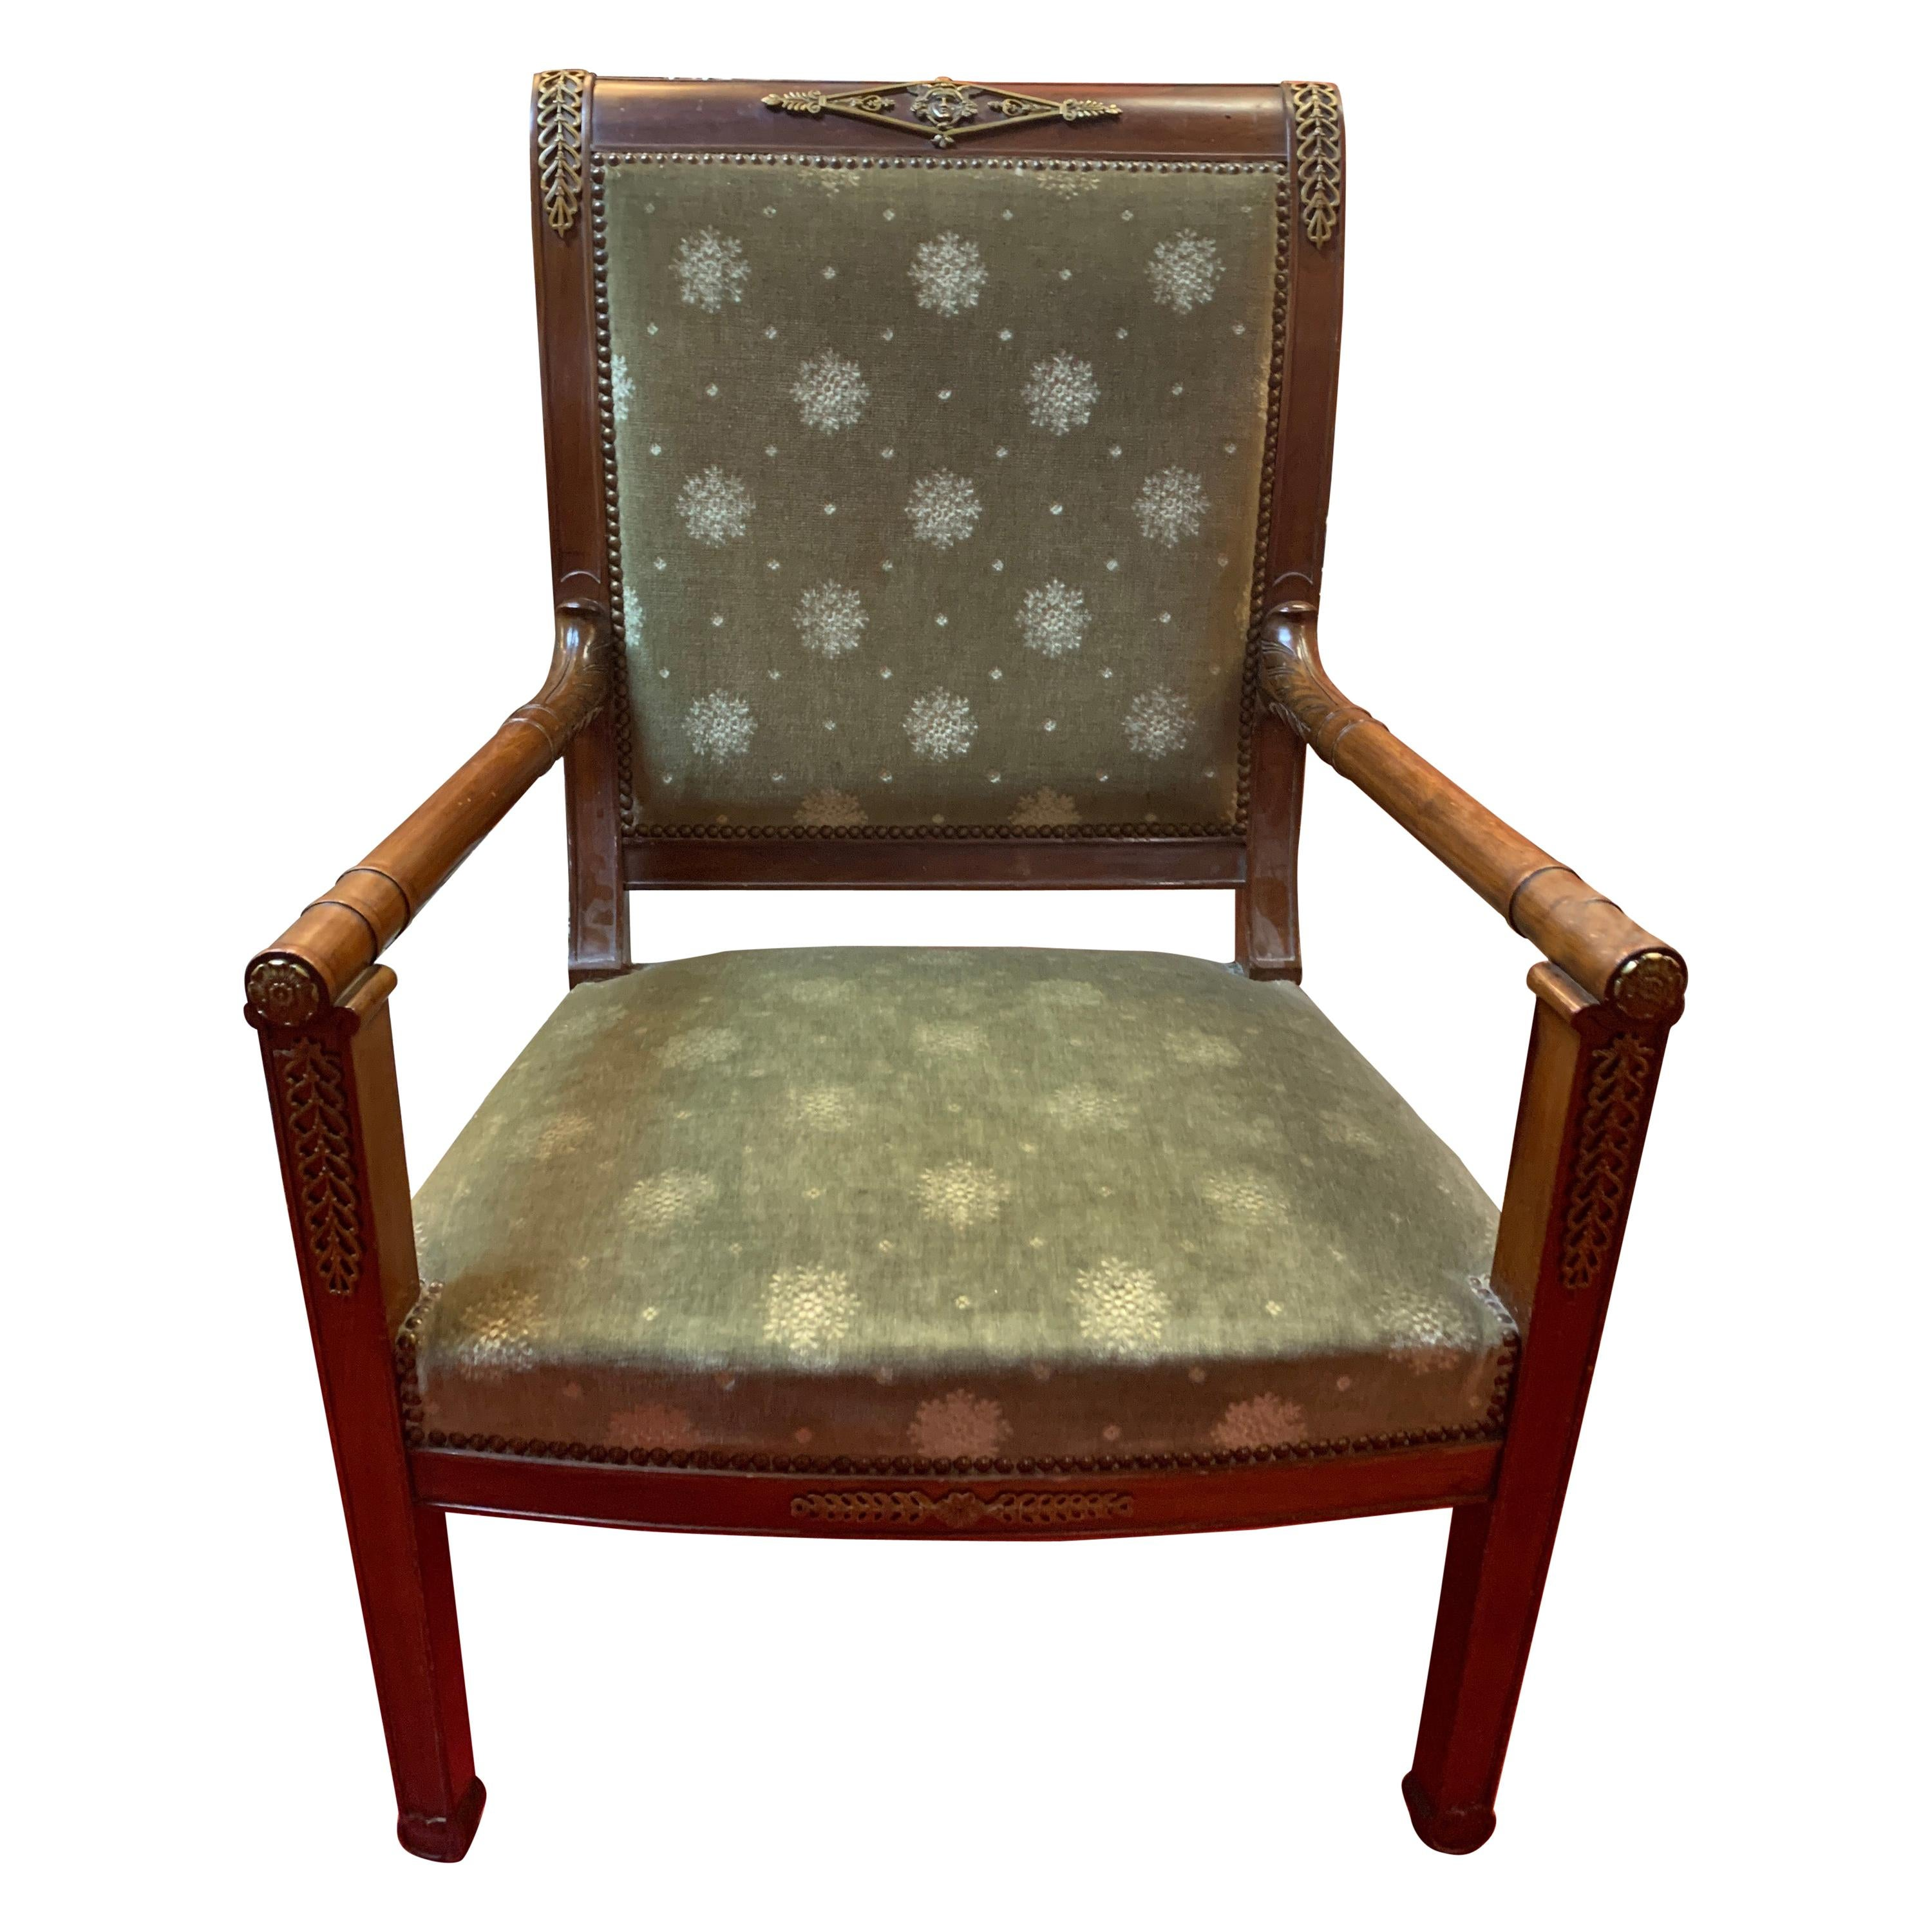 French Empire Bronze Decorations Fauteuil Armchair, circa 1820